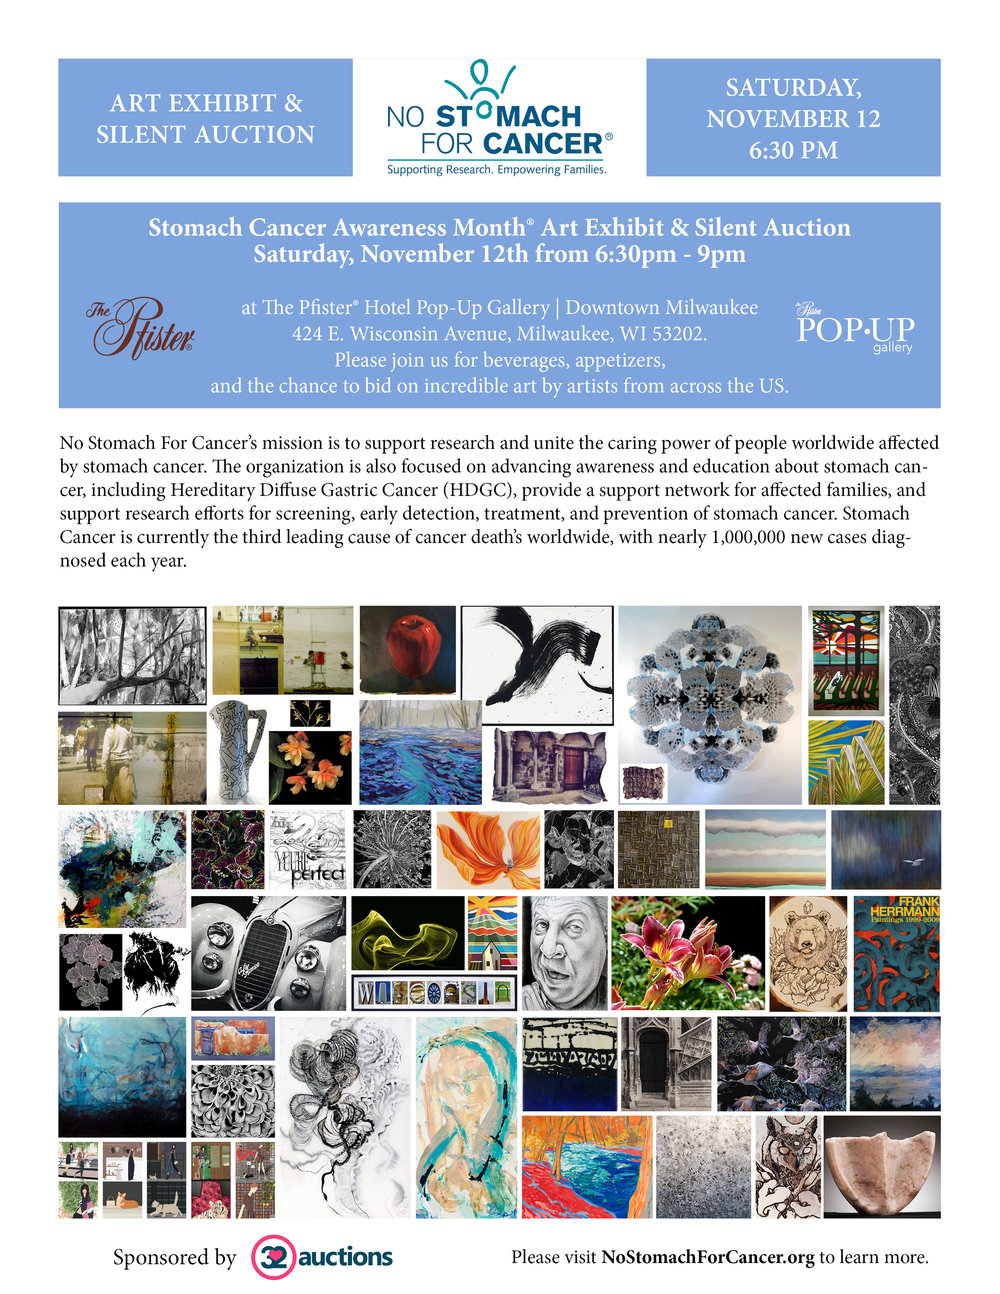 It is an honor to involved in No Stomach For Cancer's upcoming Silent Art Auction. Having family directly touched by Stomach Cancer, I am happy to raise awareness and funds to help eradicate this cancer once and for all. We have 52 pieces of art donated by artists from across the country that will be on display as of Wednesday, October 26th, at the Pop Up Gallery at The Pfister Hotel in downtown Milwaukee, WI. The actual auction takes place Saturday evening, November 12th, from 6:30-9:30. However, you can visit the exhibition the entire month of November and continue to bid on any art that hasn't sold through  32 auctions  at https://www.32auctions.com. Here is a sample of the artists who generously donated their art...